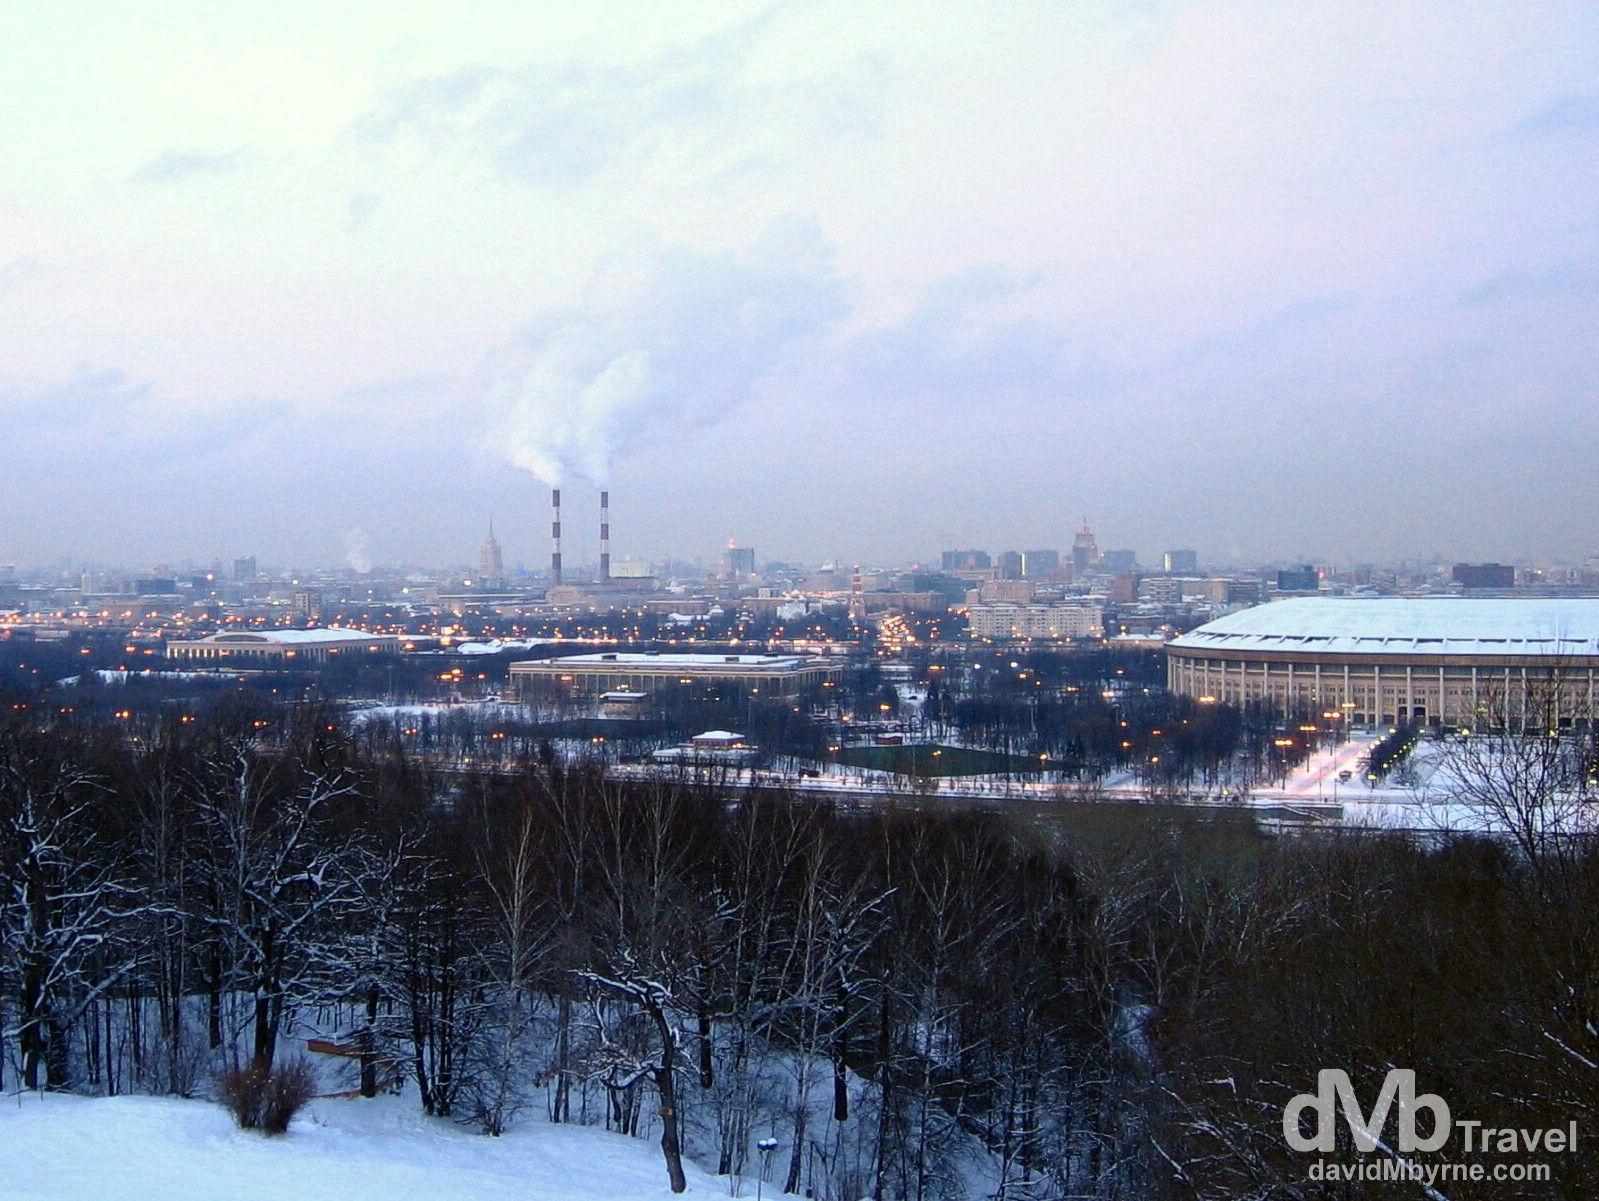 A section of Moscow as seen from Sparrow Hills overlooking the city. Moscow, Russia. February 26, 2006.